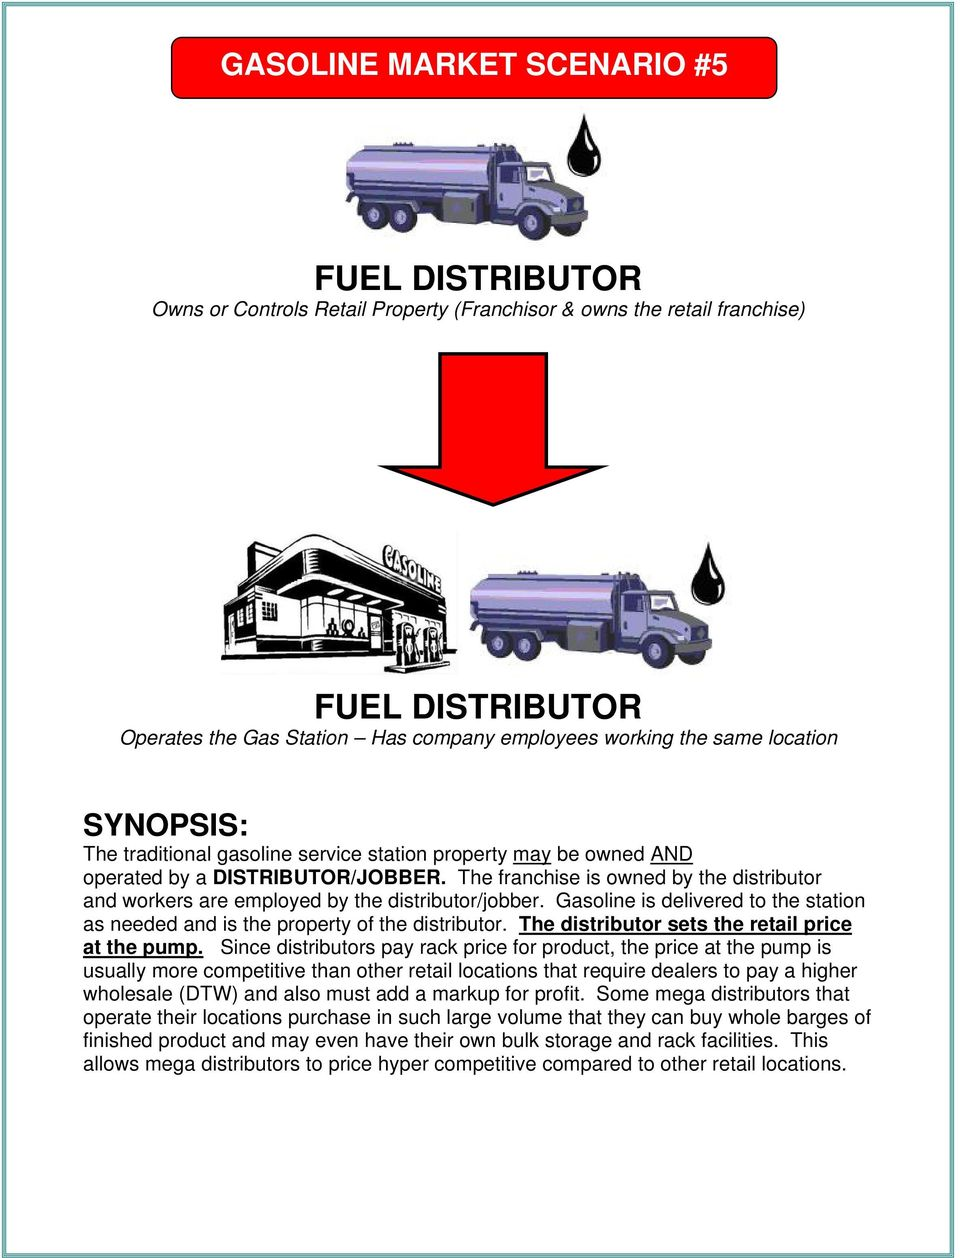 The franchise is owned by the distributor and workers are employed by the distributor/jobber. Gasoline is delivered to the station as needed and is the property of the distributor.